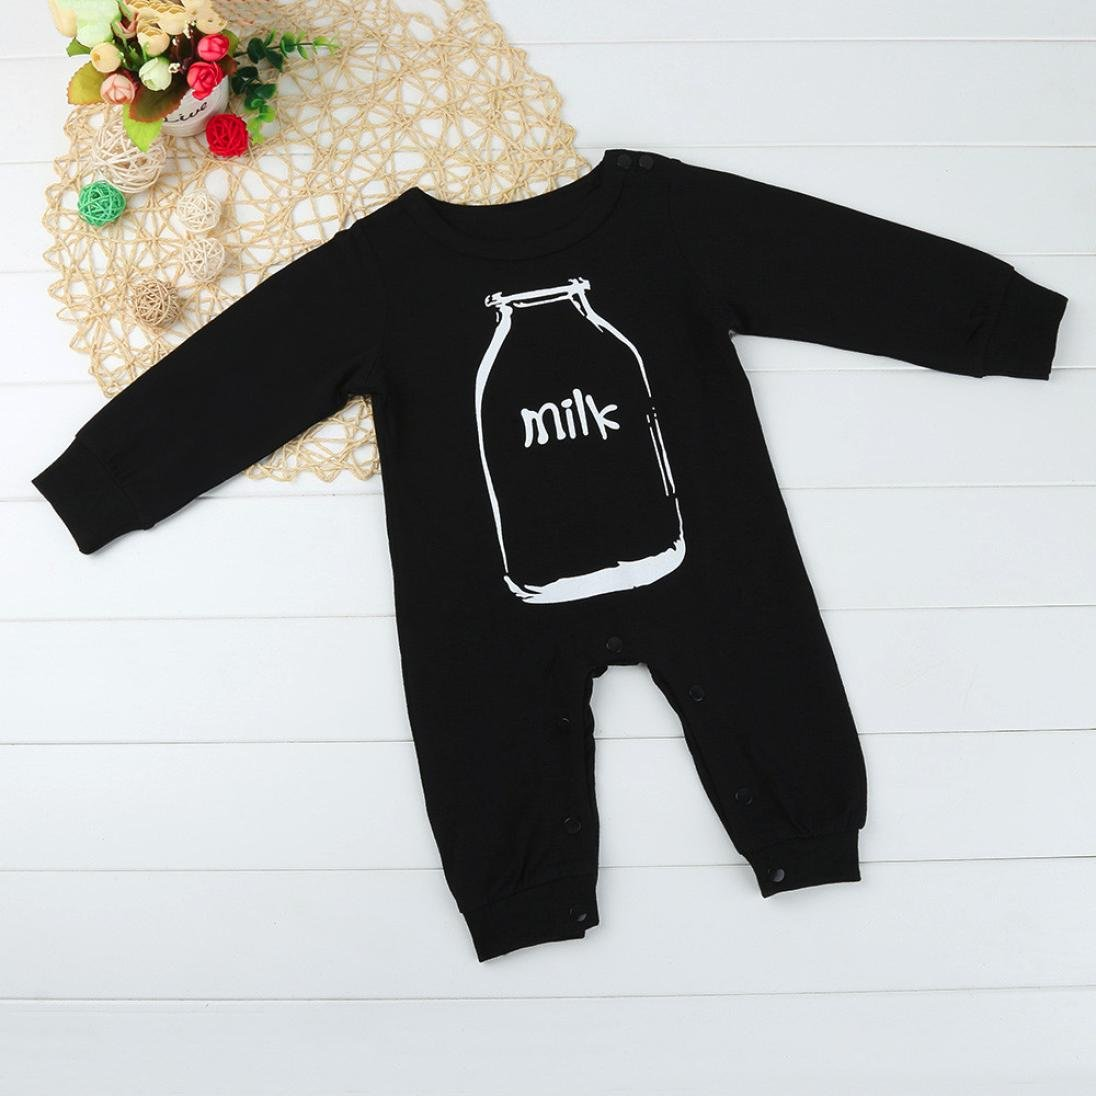 Newborn Infant Baby Boy Girl Long Sleeve Milk Letter Romper Jumpsuit Outfits Clothes SHOBDW Boys Rompers